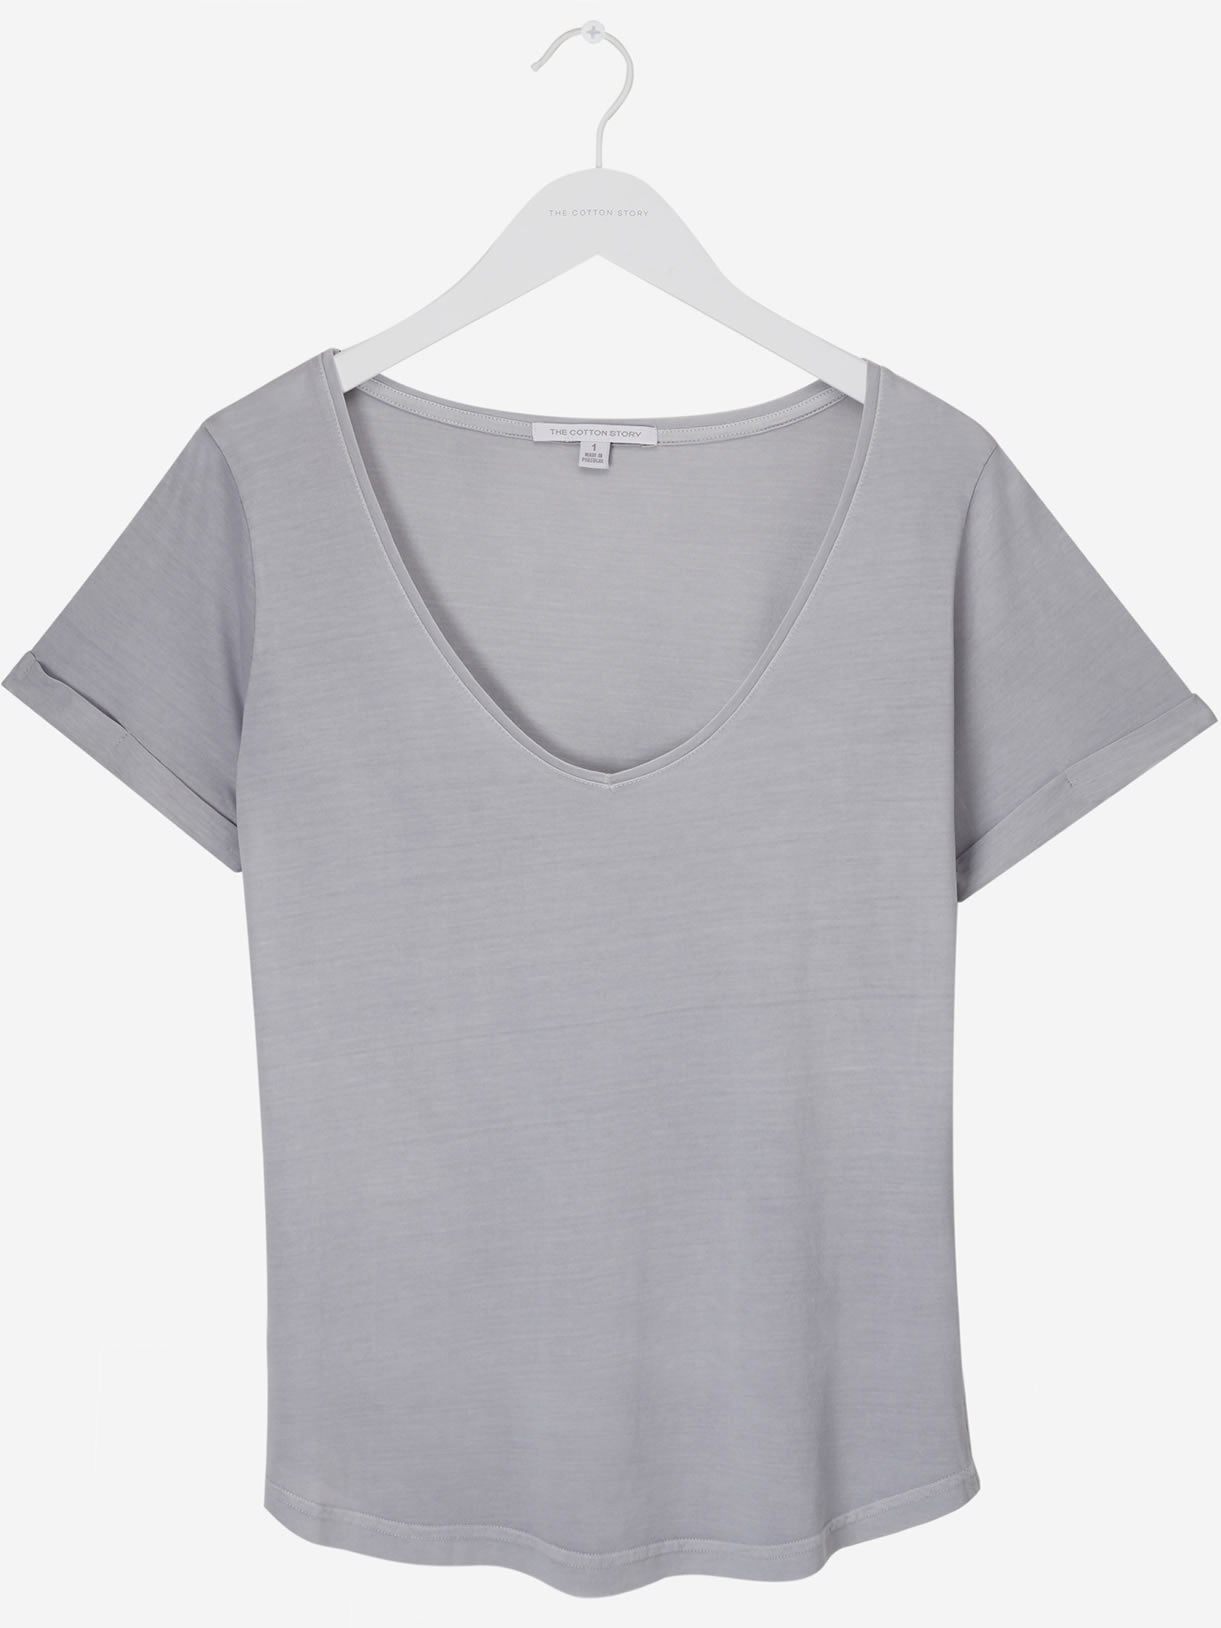 Women's Classic V Neck Tee Sharkskin Grey